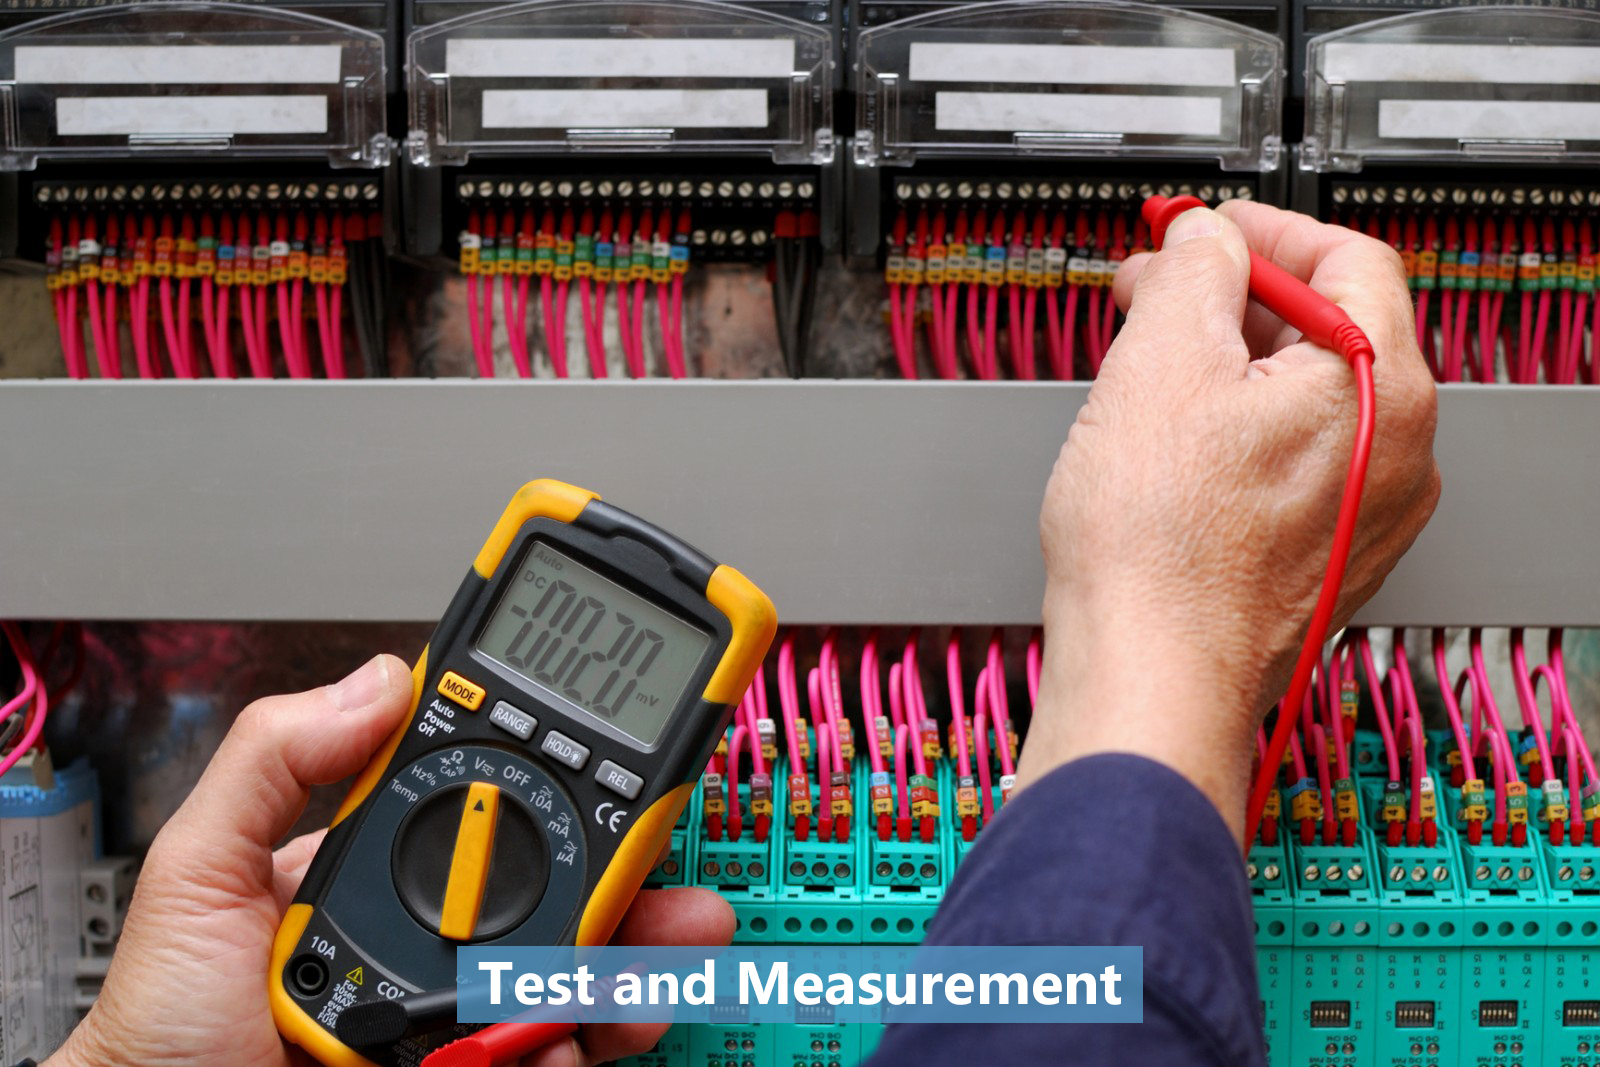 Test and Measurement Applications Manufacturing